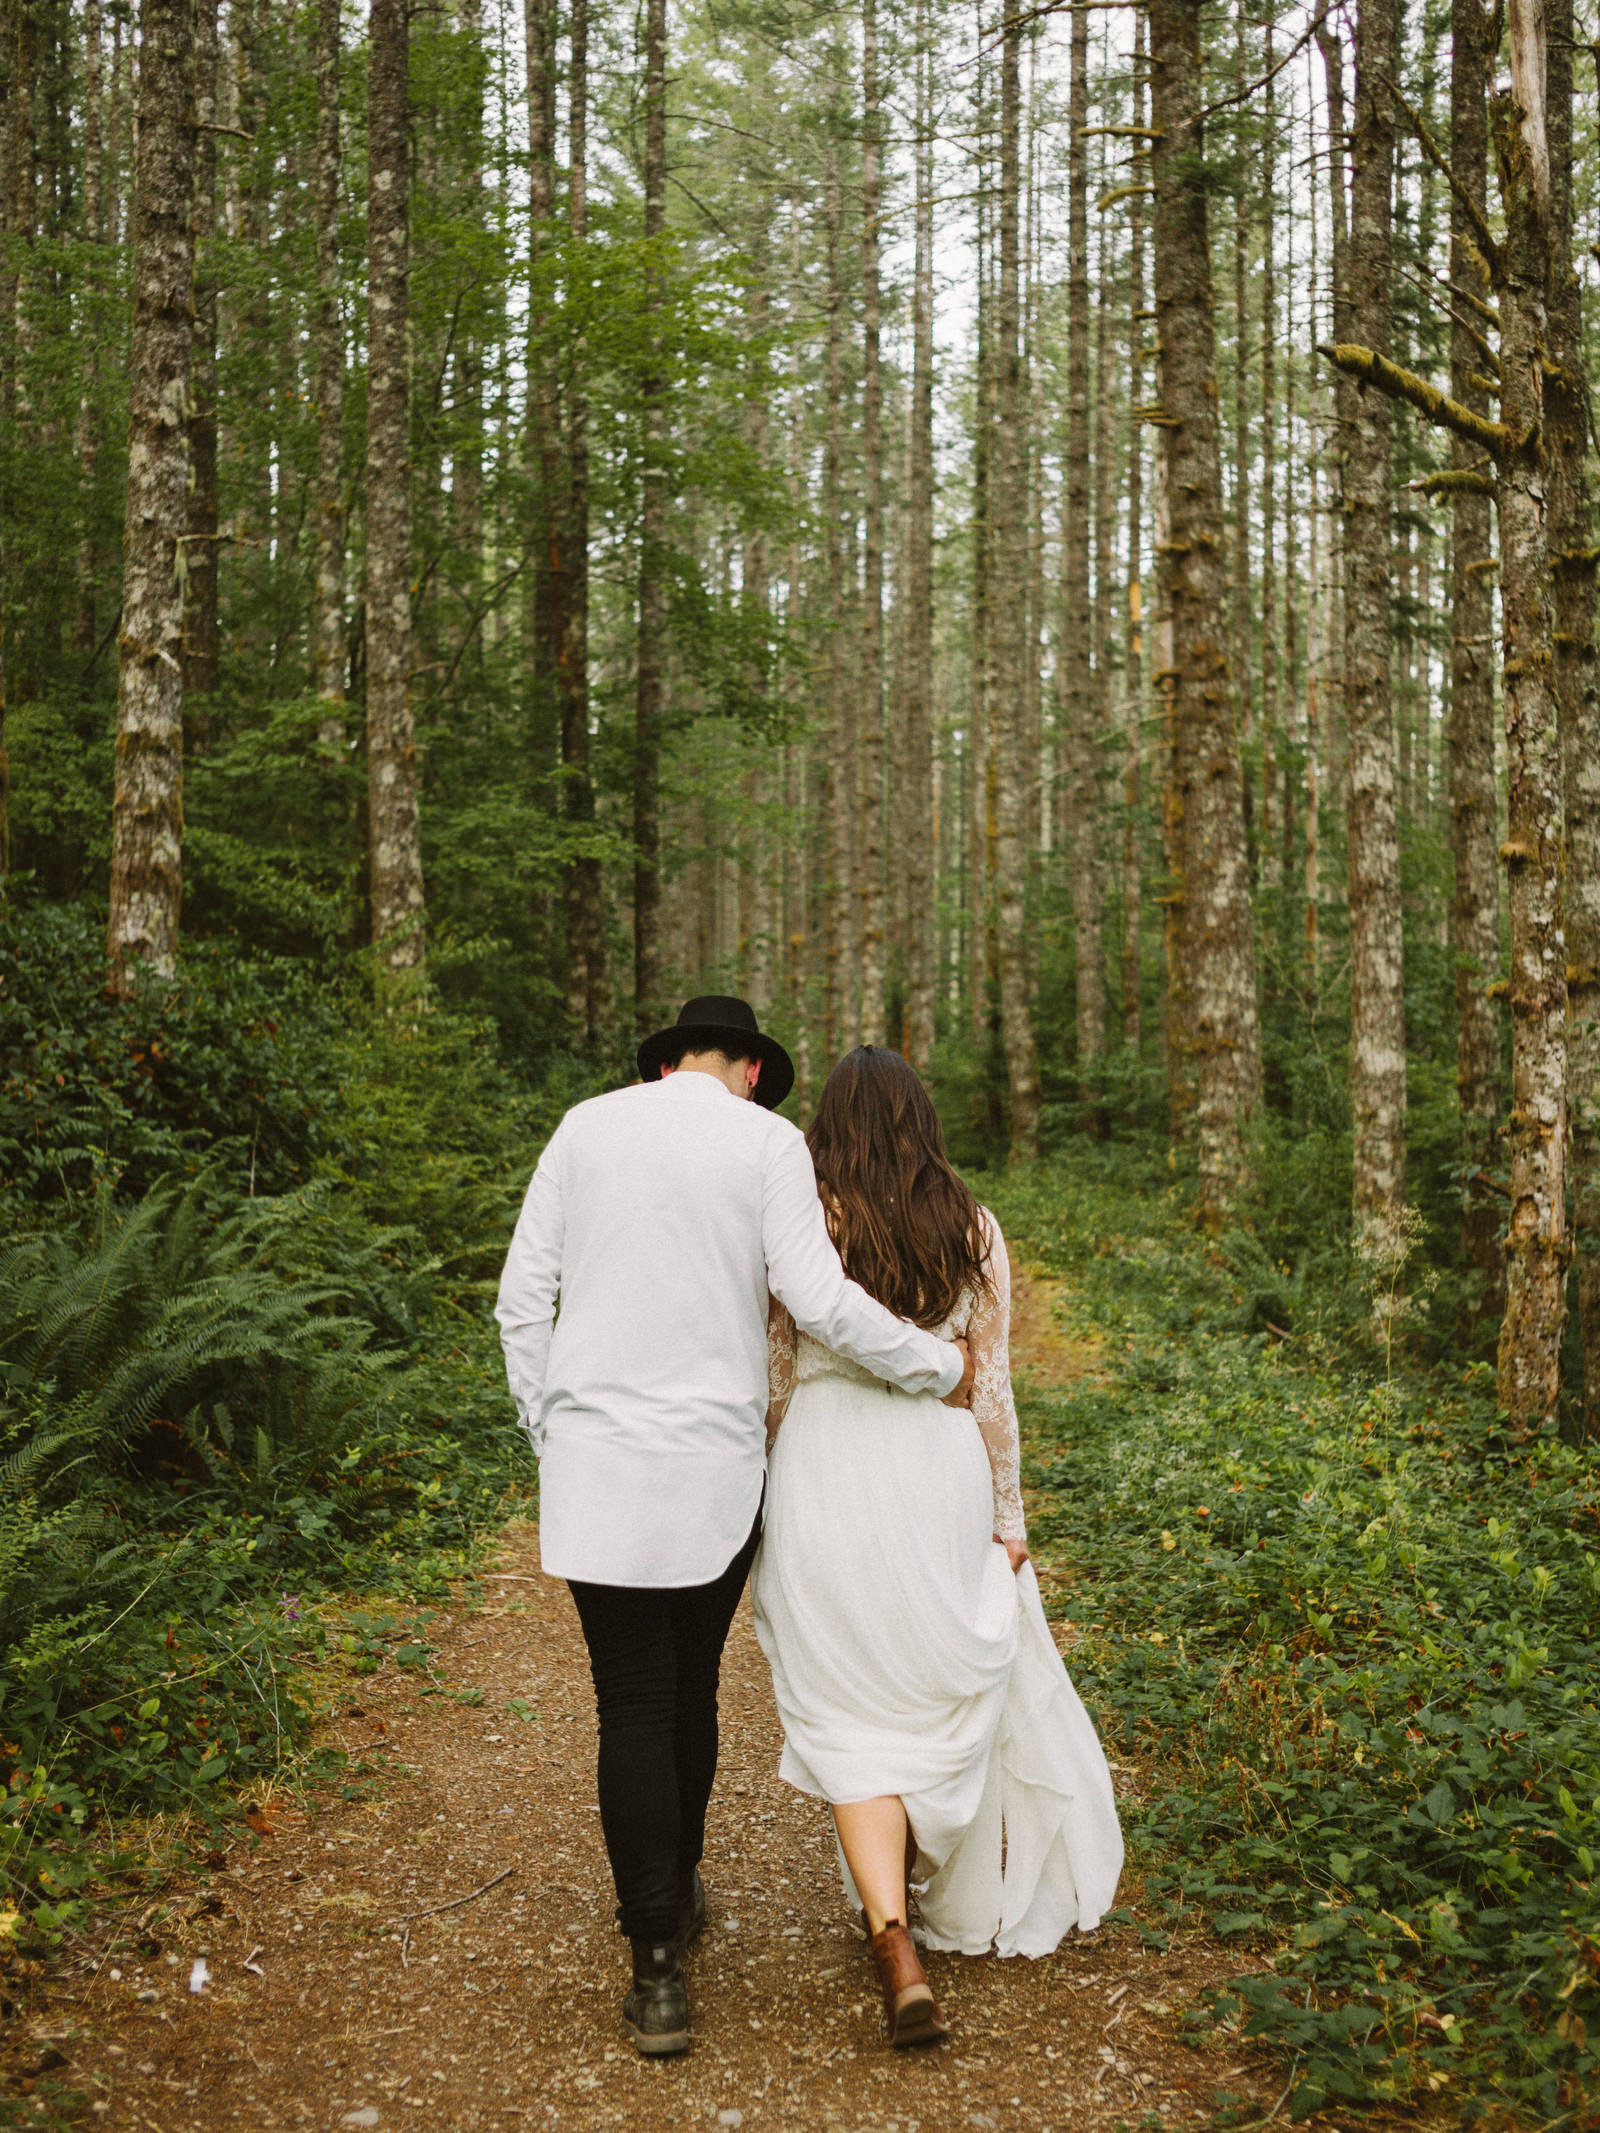 athena-and-camron-seattle-elopement-wedding-benj-haisch-rattlesnake-lake-christian-couple-goals14